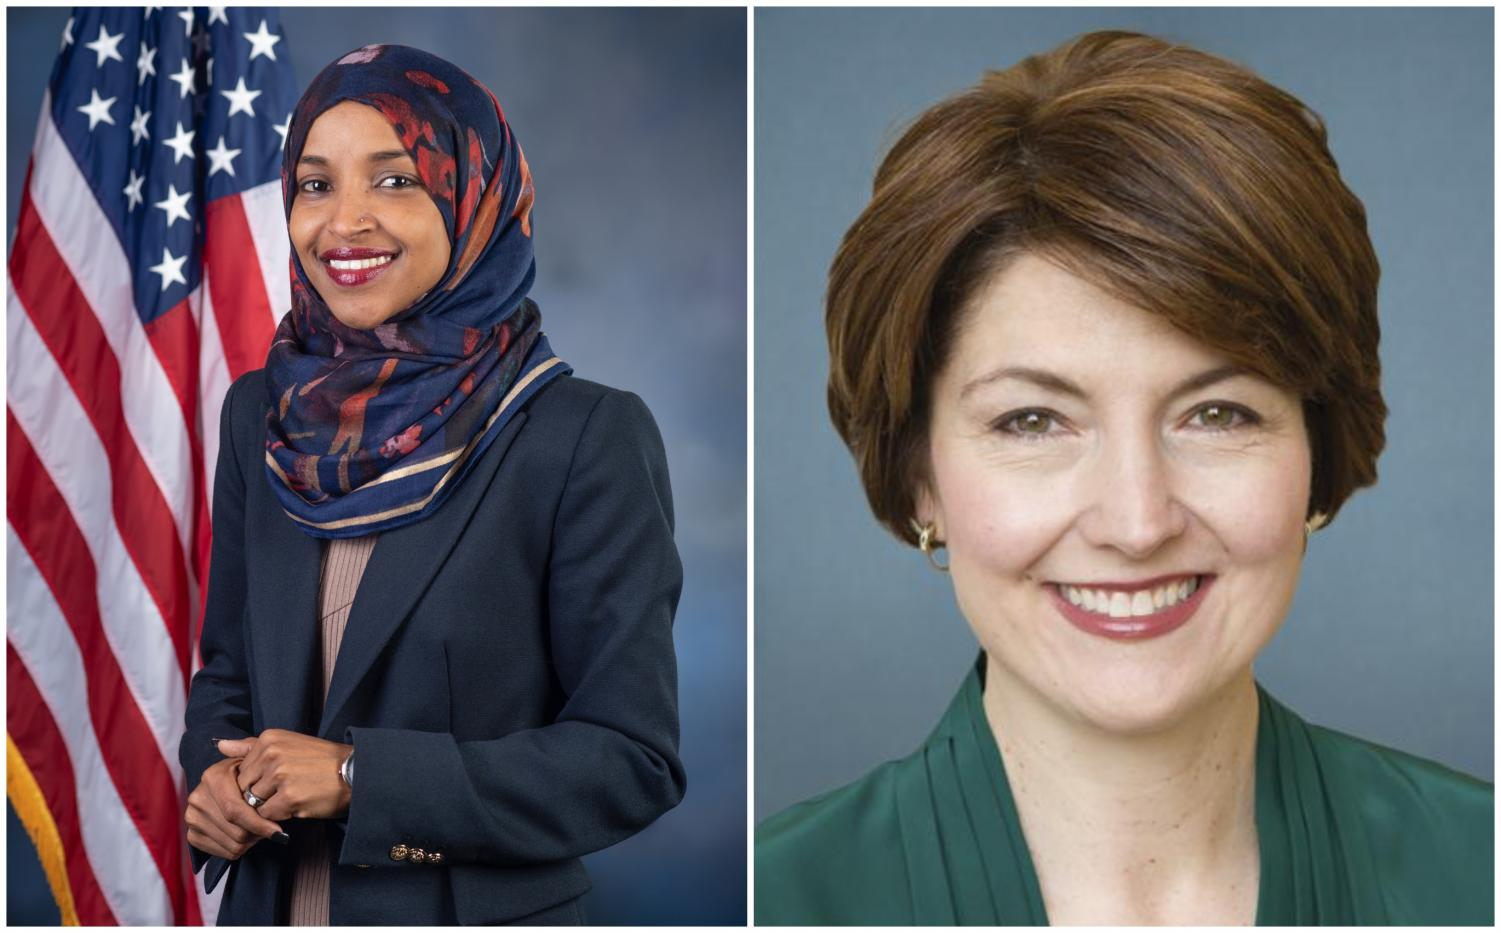 Immigration, the Muslim ban, overpriced prescription drugs and clean energy — Ilhan Omar and Cathy McMorris Rodgers are taking these challenges head-on every day.